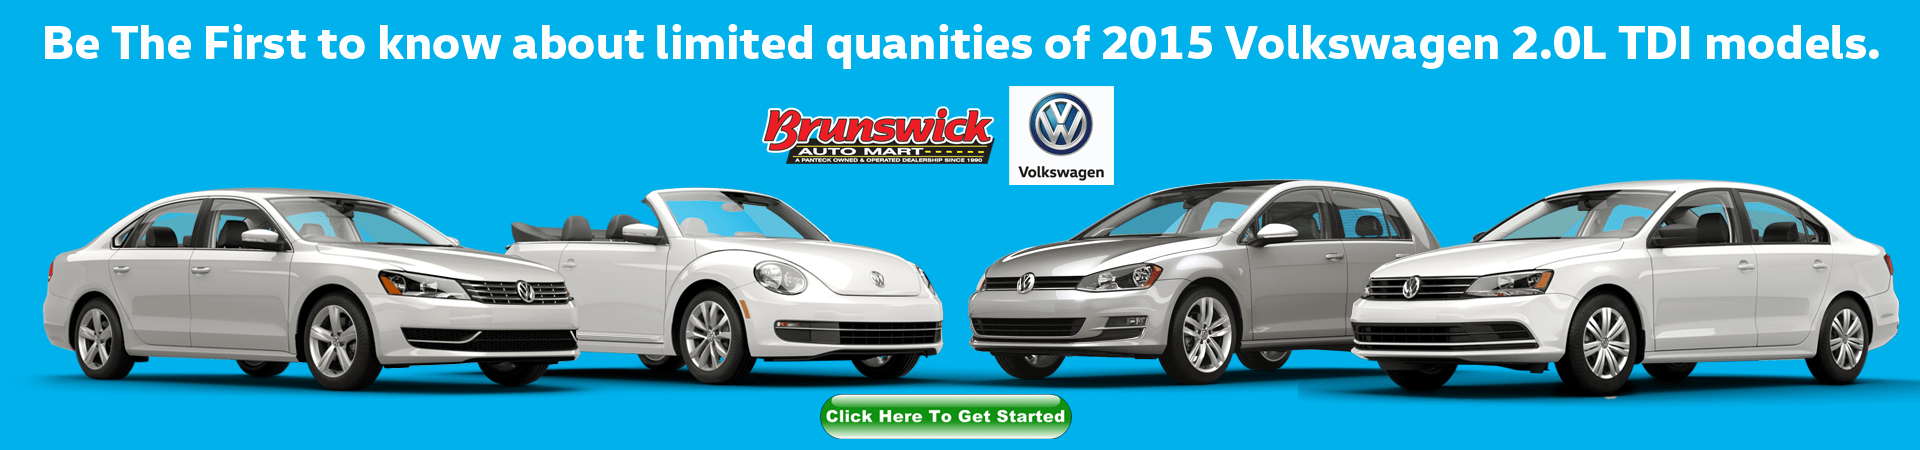 2015 VW TDI's for sale